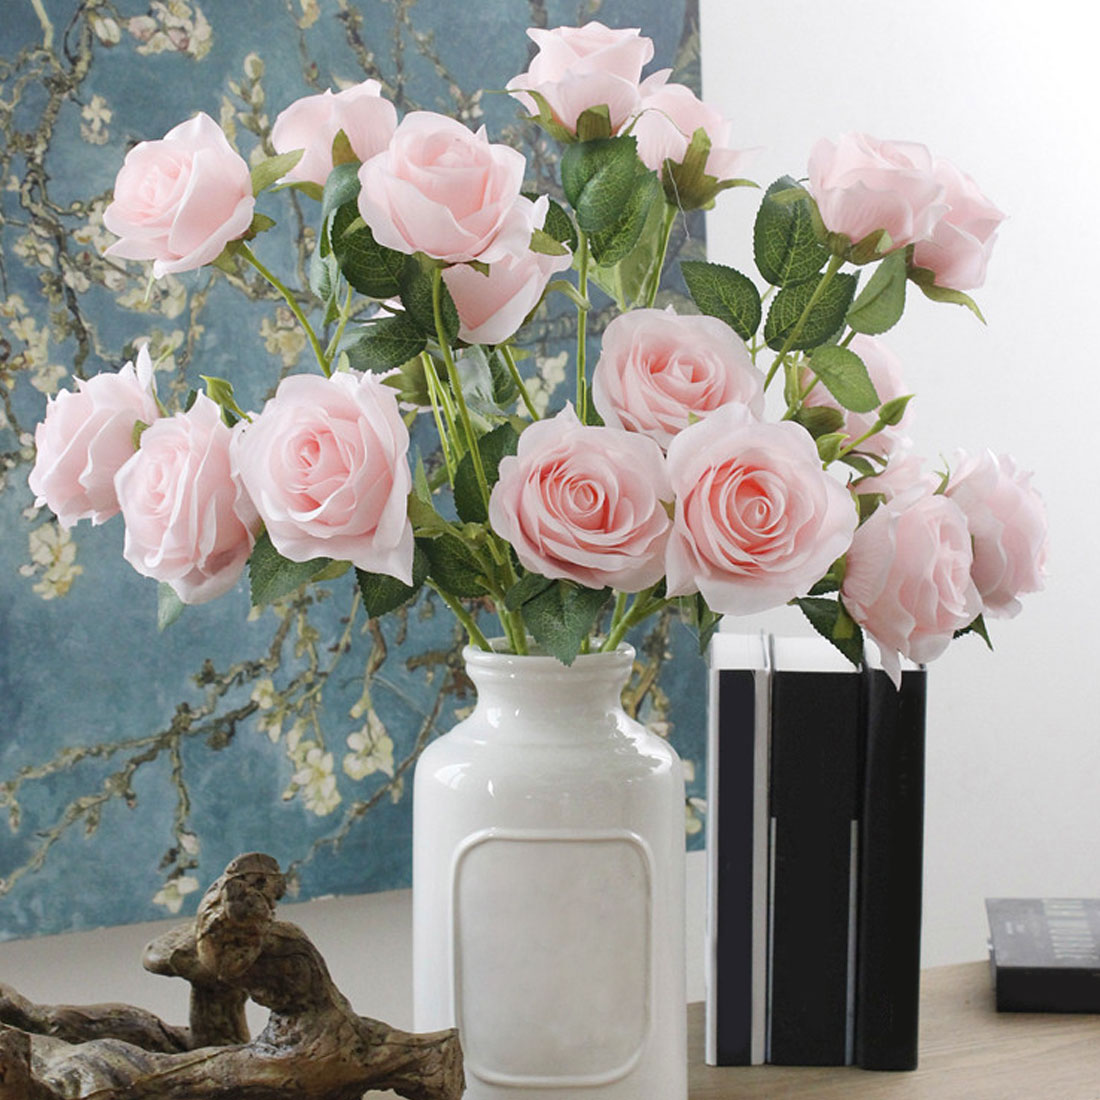 Rose Flower wedding decoration Artificial silk 1 Bunch 3 heads French Table Bouquet Fake Flower Wedding Home Party accessory fake rose flowers